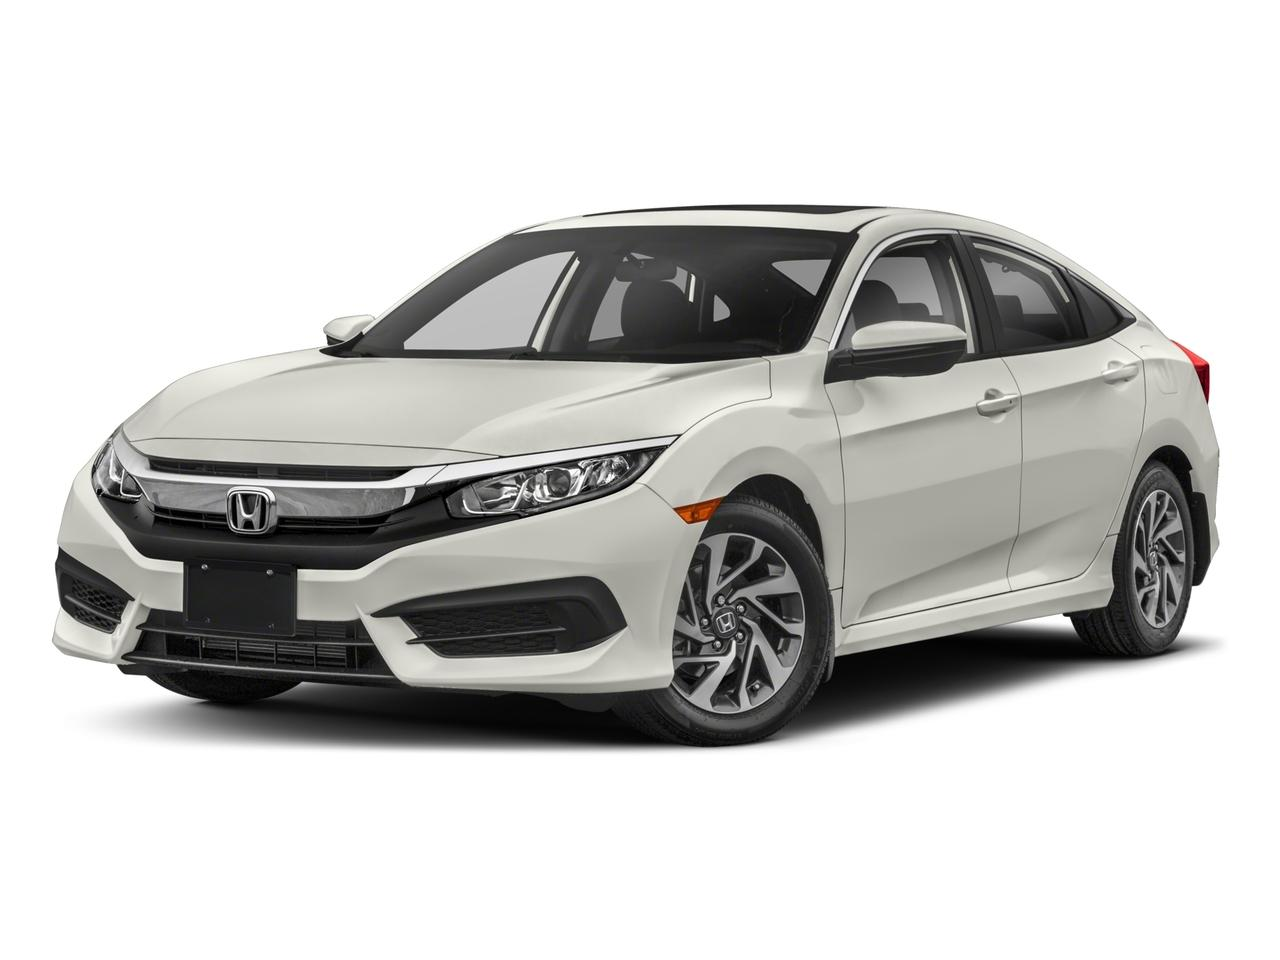 2018 Honda Civic Sedan Vehicle Photo in Corpus Christi, TX 78411